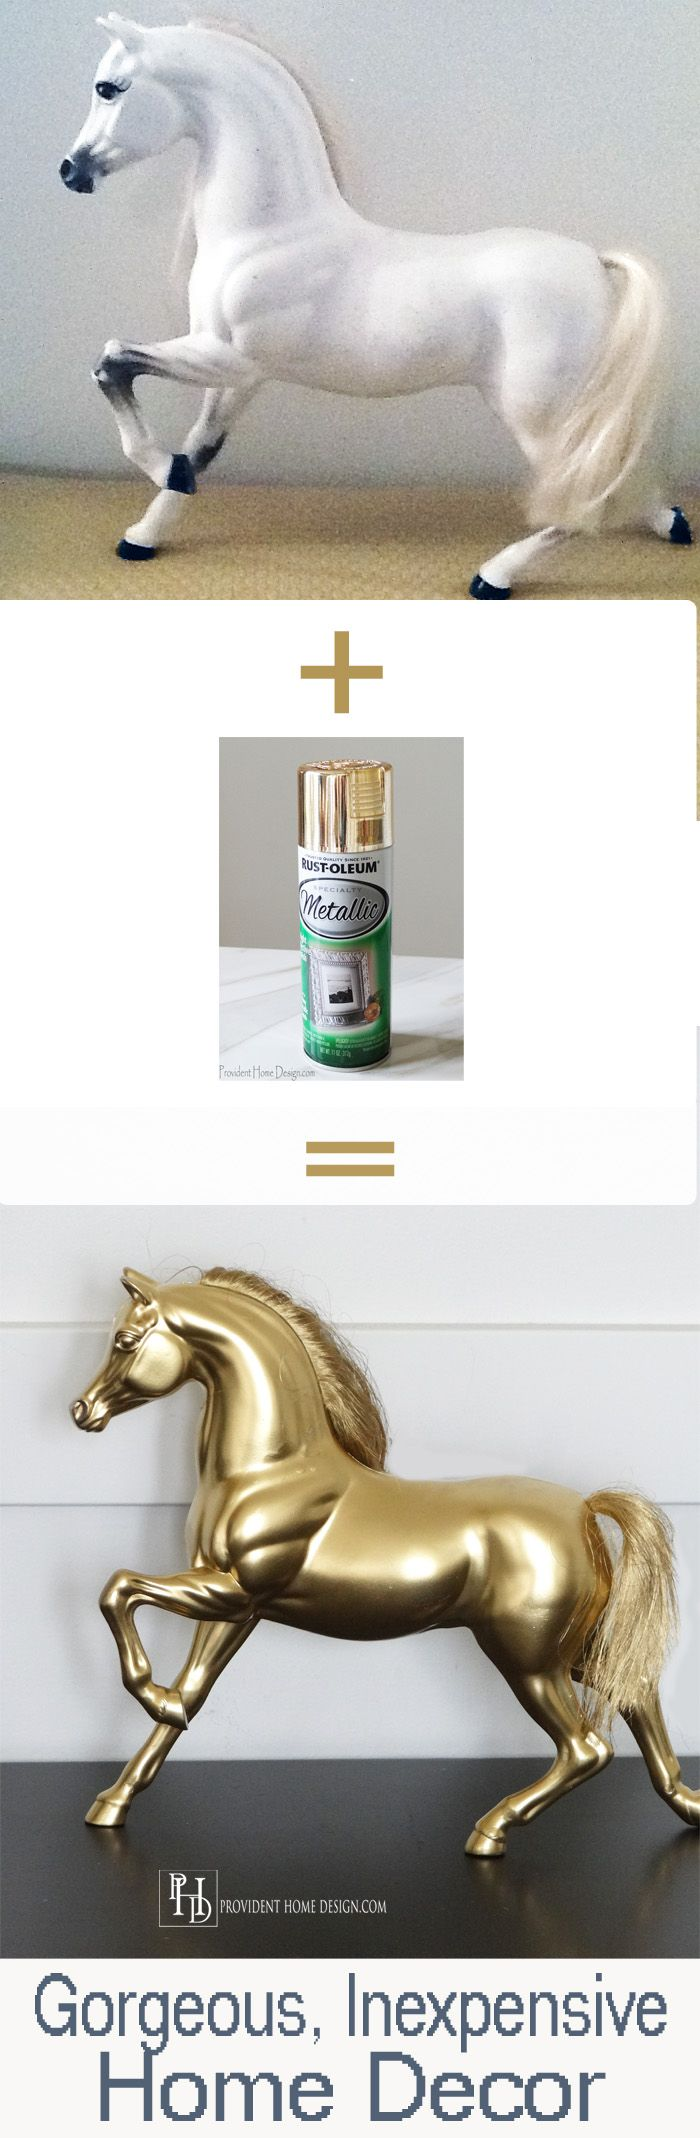 Come get inspired by what just a little spray paint can do! Spray horses white and kids can paint their own horse